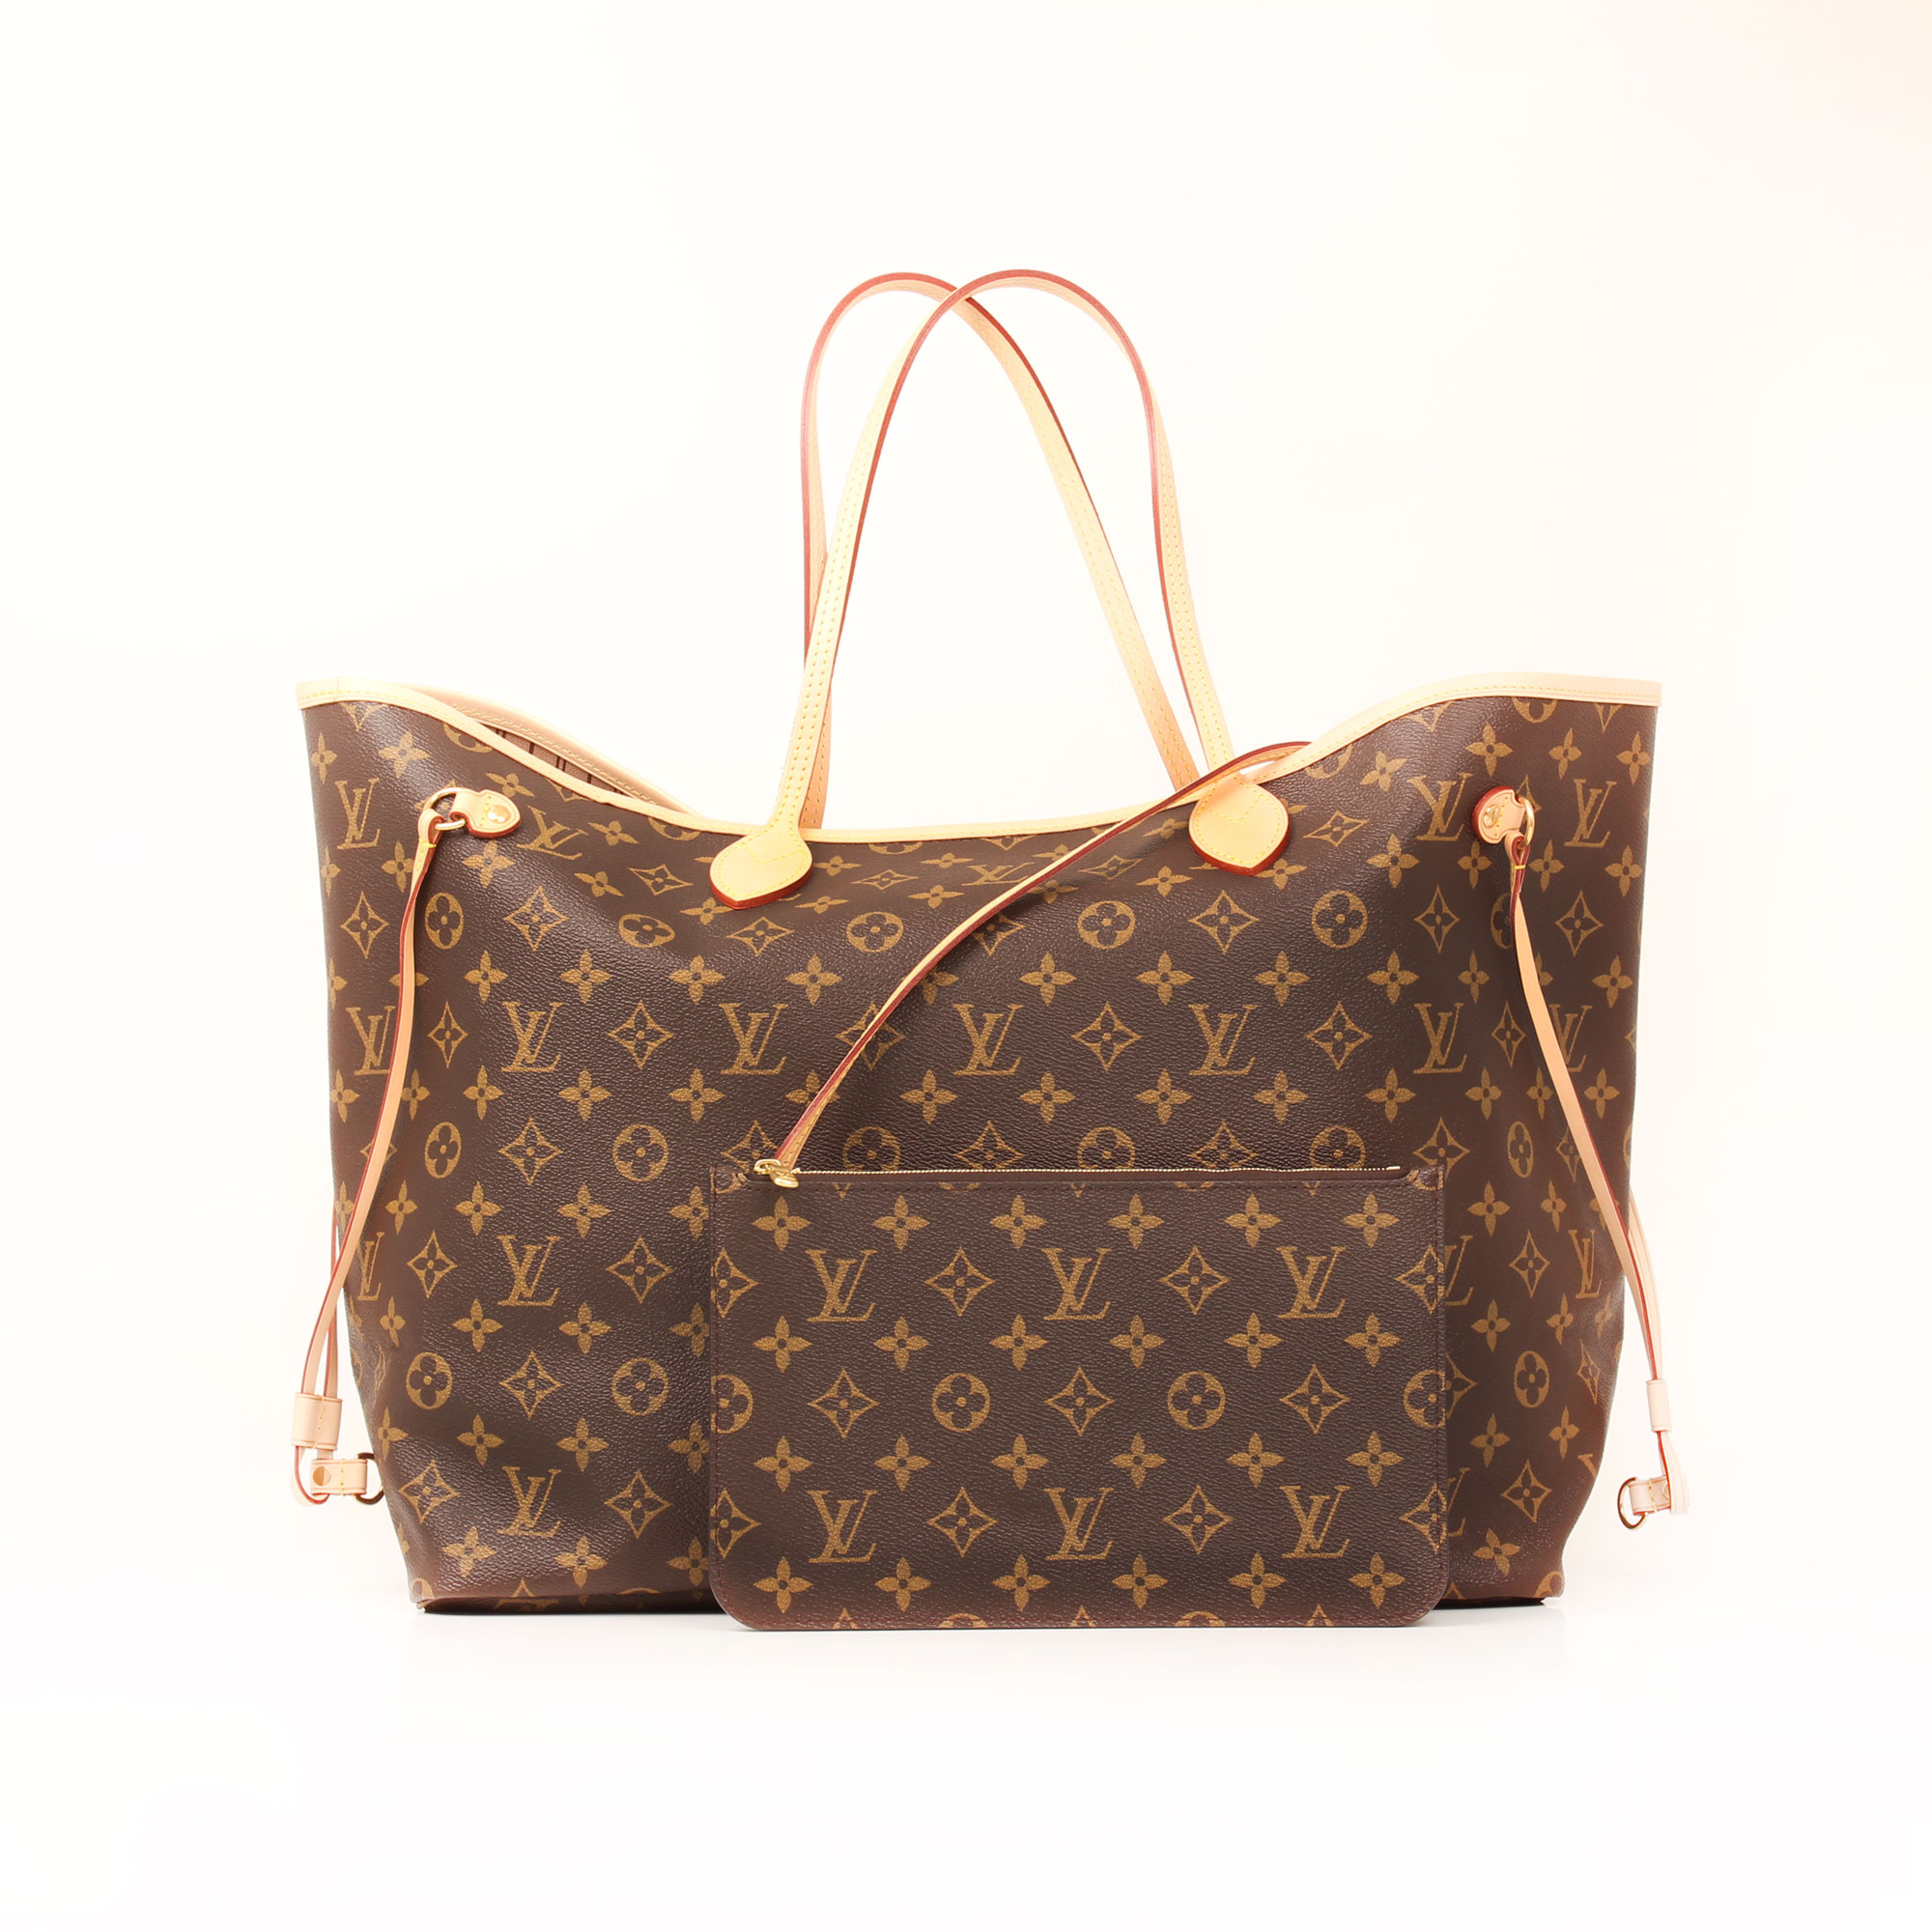 Louis Vuitton Neverfull GM Monogram Canvas Complete I CBL Bags